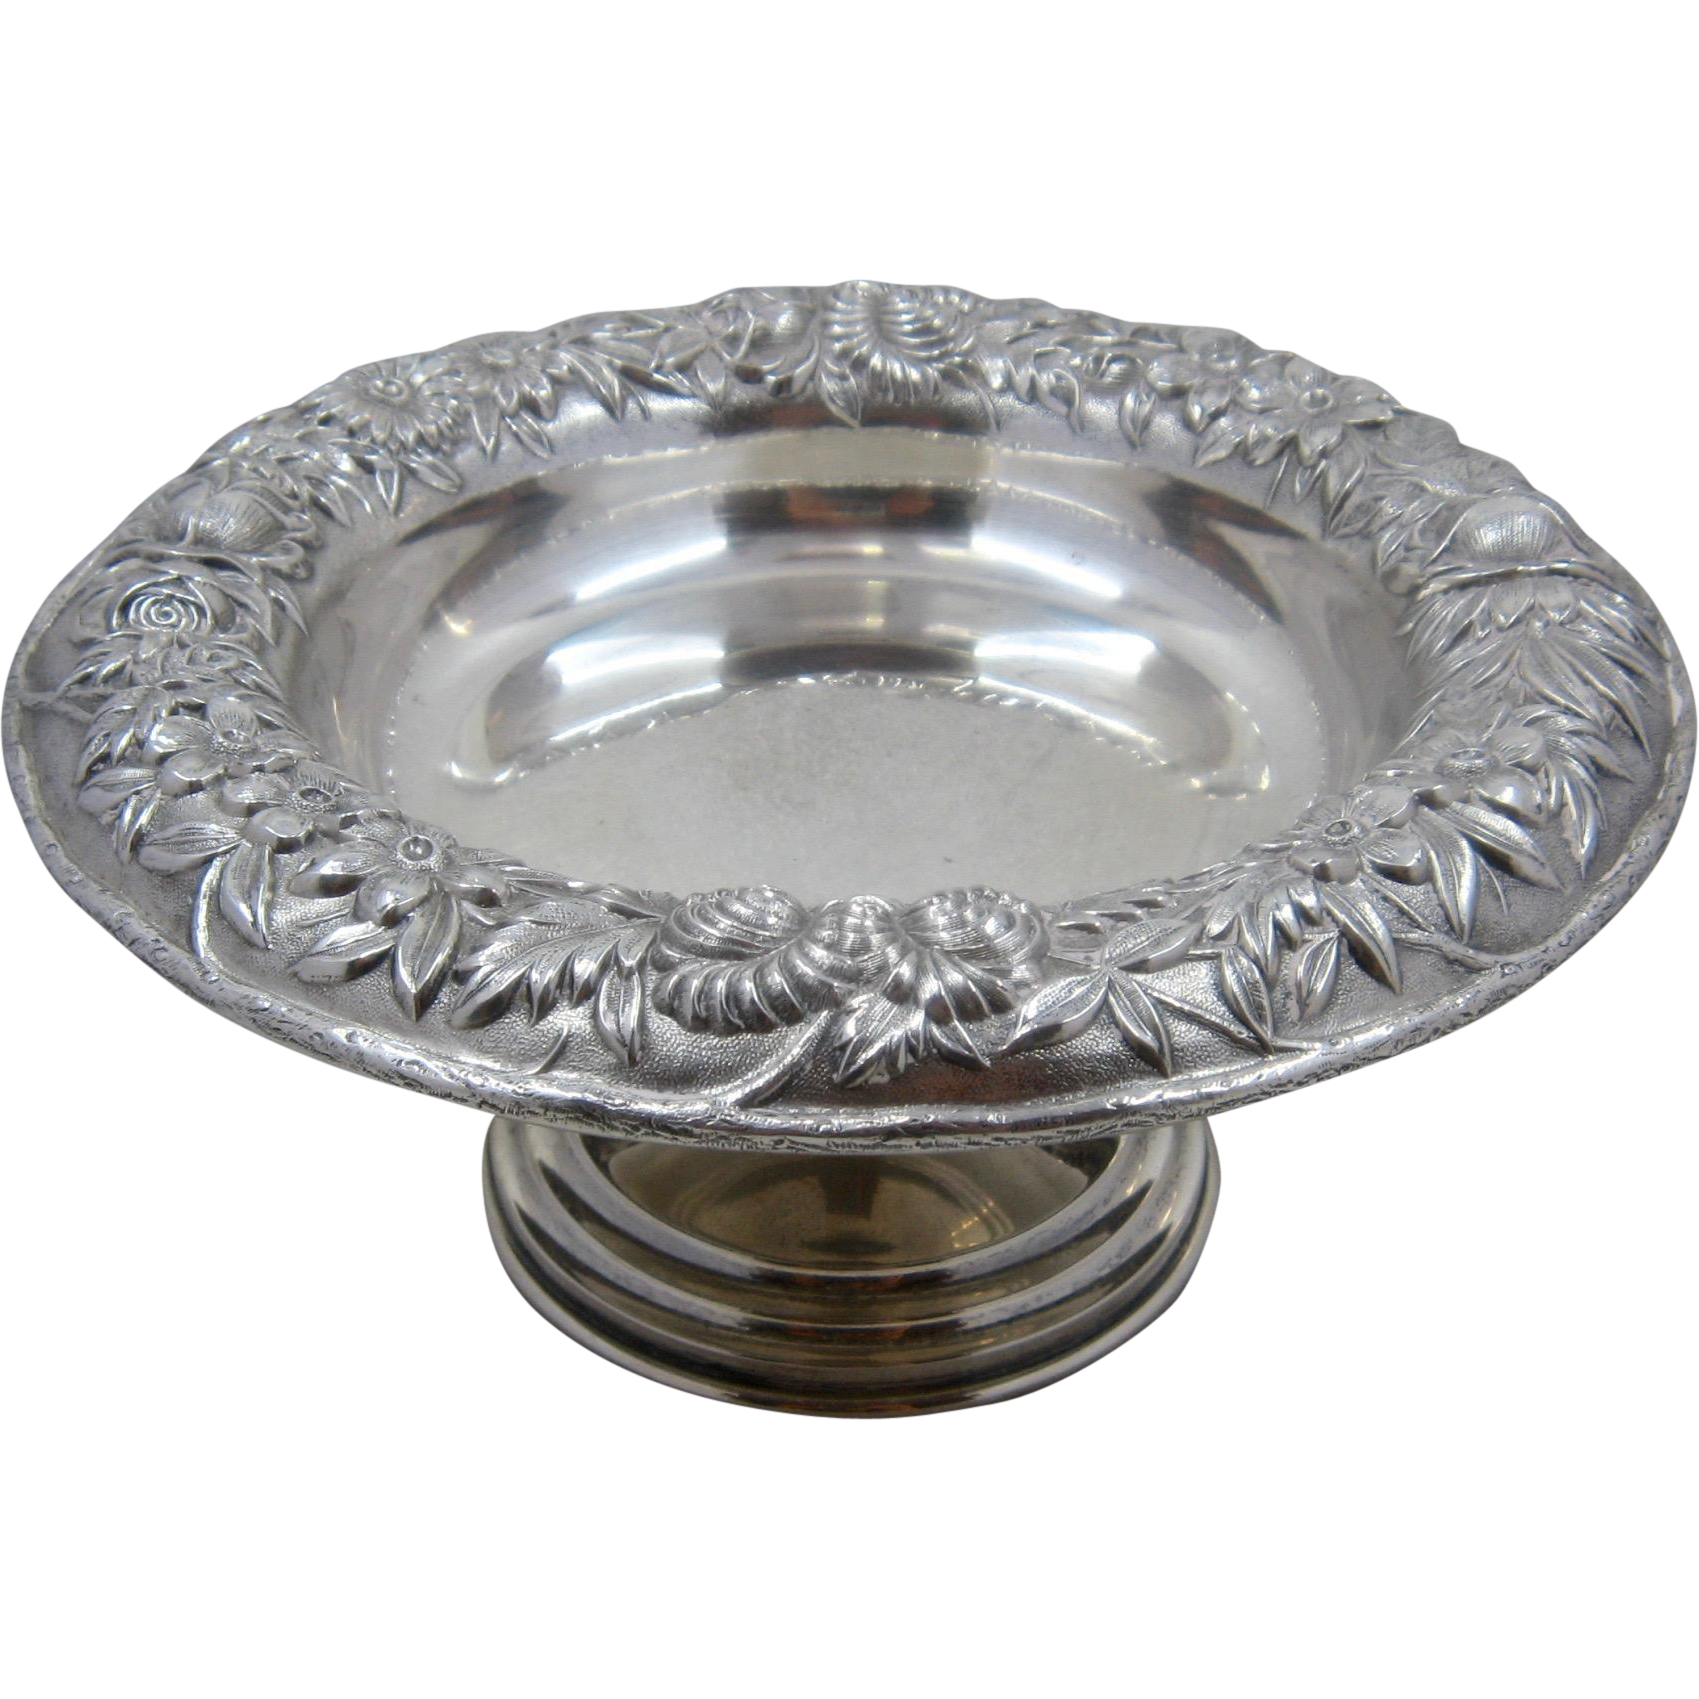 S. Kirk & Son Sterling Floral Repousse Compote Footed Bowl